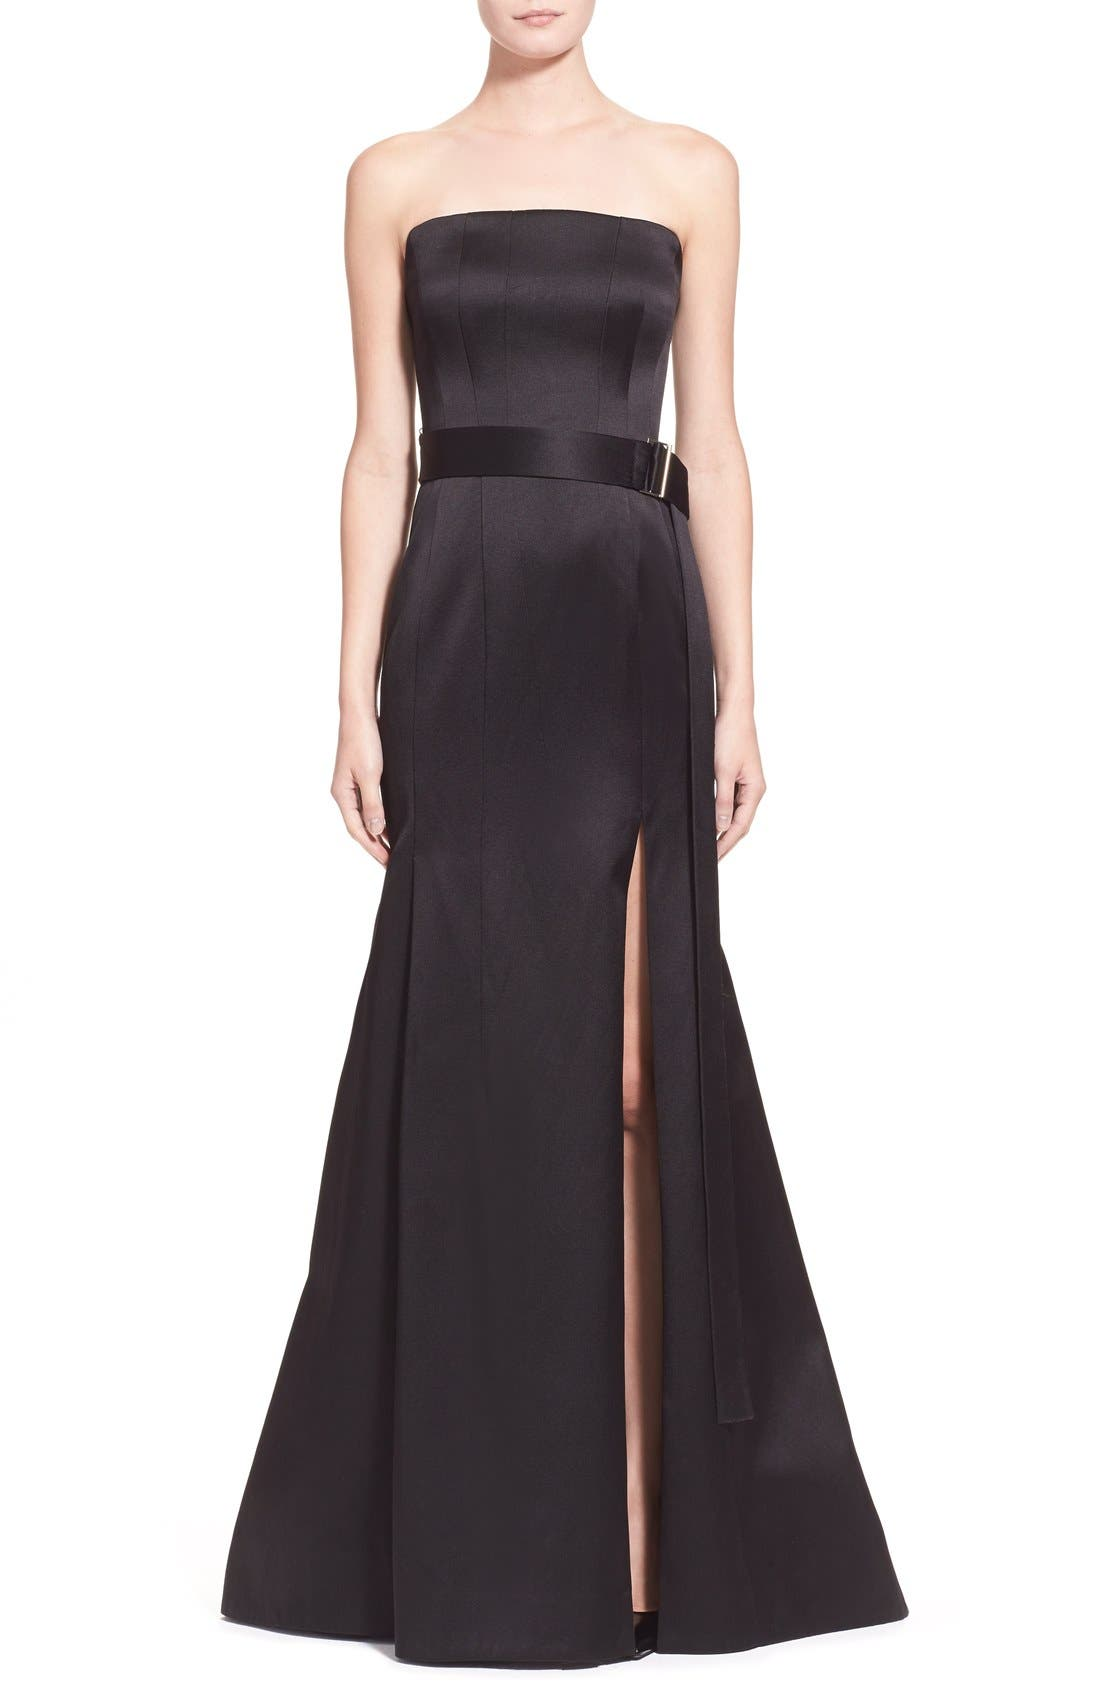 Main Image - Jason Wu 'Reese' Strapless Satin Twill Gown